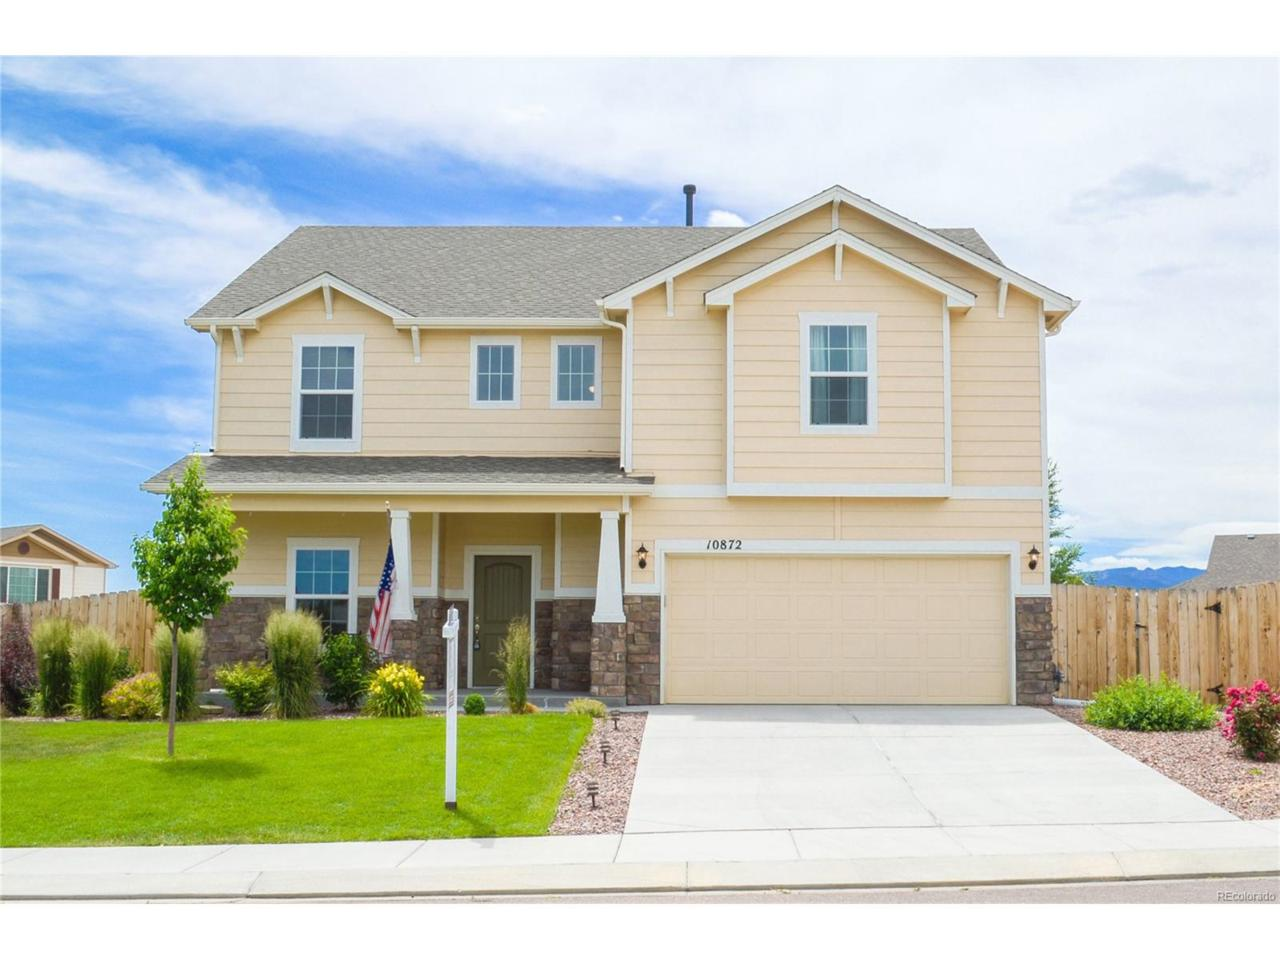 10872 Mcgahan Drive, Fountain, CO 80817 (MLS #1960378) :: 8z Real Estate